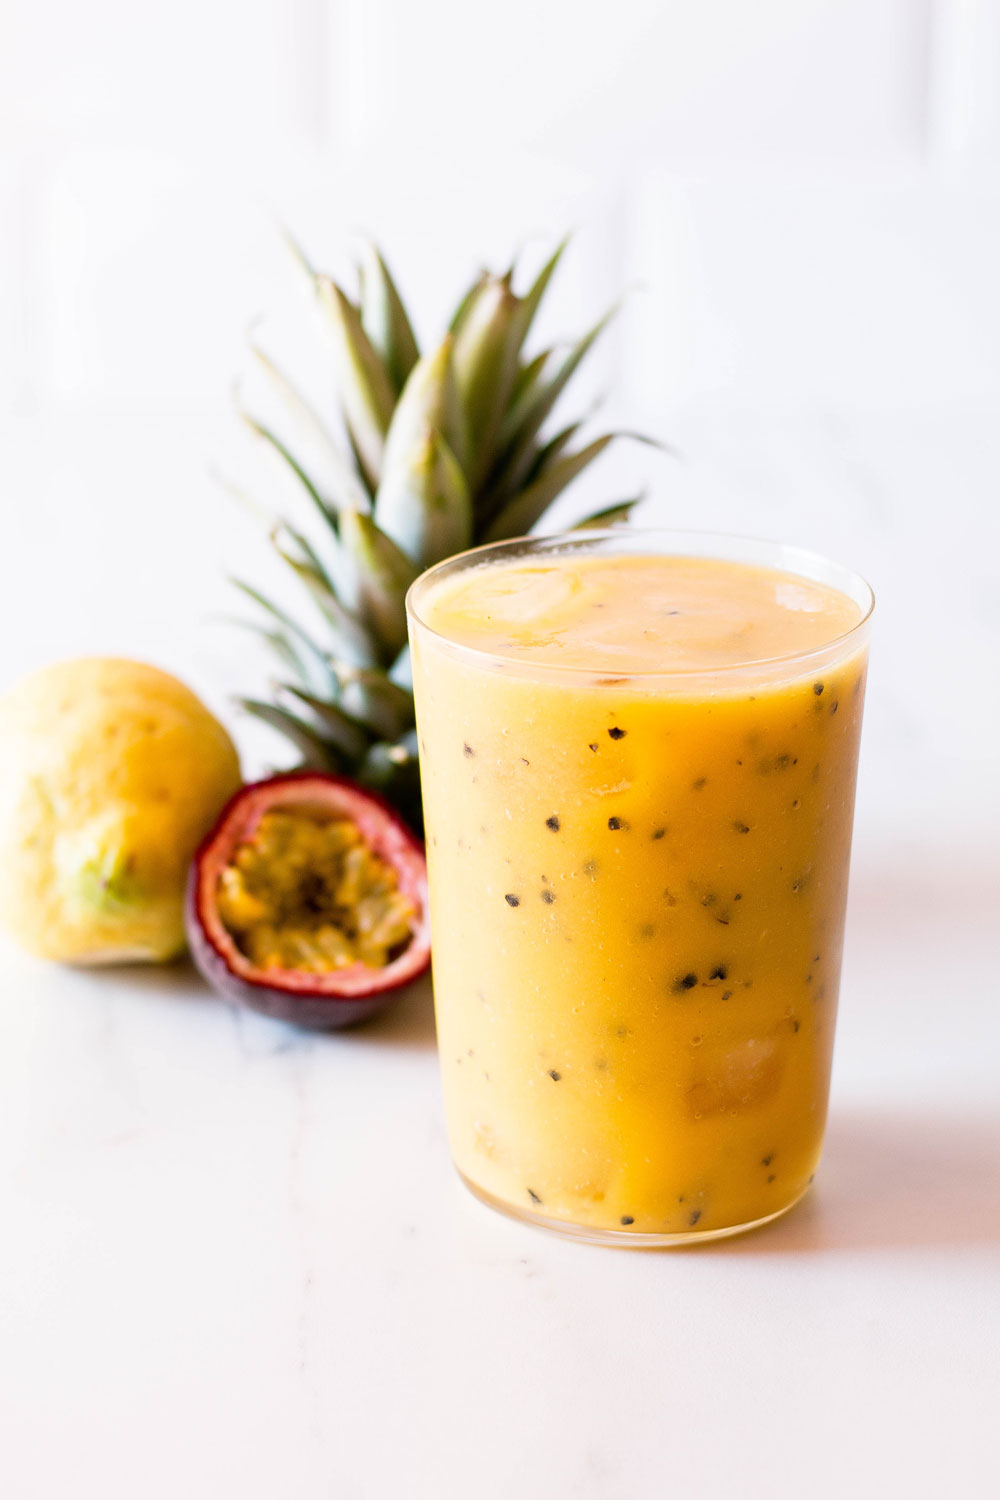 This passion fruit, mango, and pineapple tropical smoothie is packed with vitamin C and helps keep your skin tight, glowy and protected from the sun! https://www.spotebi.com/recipes/passion-fruit-mango-pineapple-tropical-smoothie/